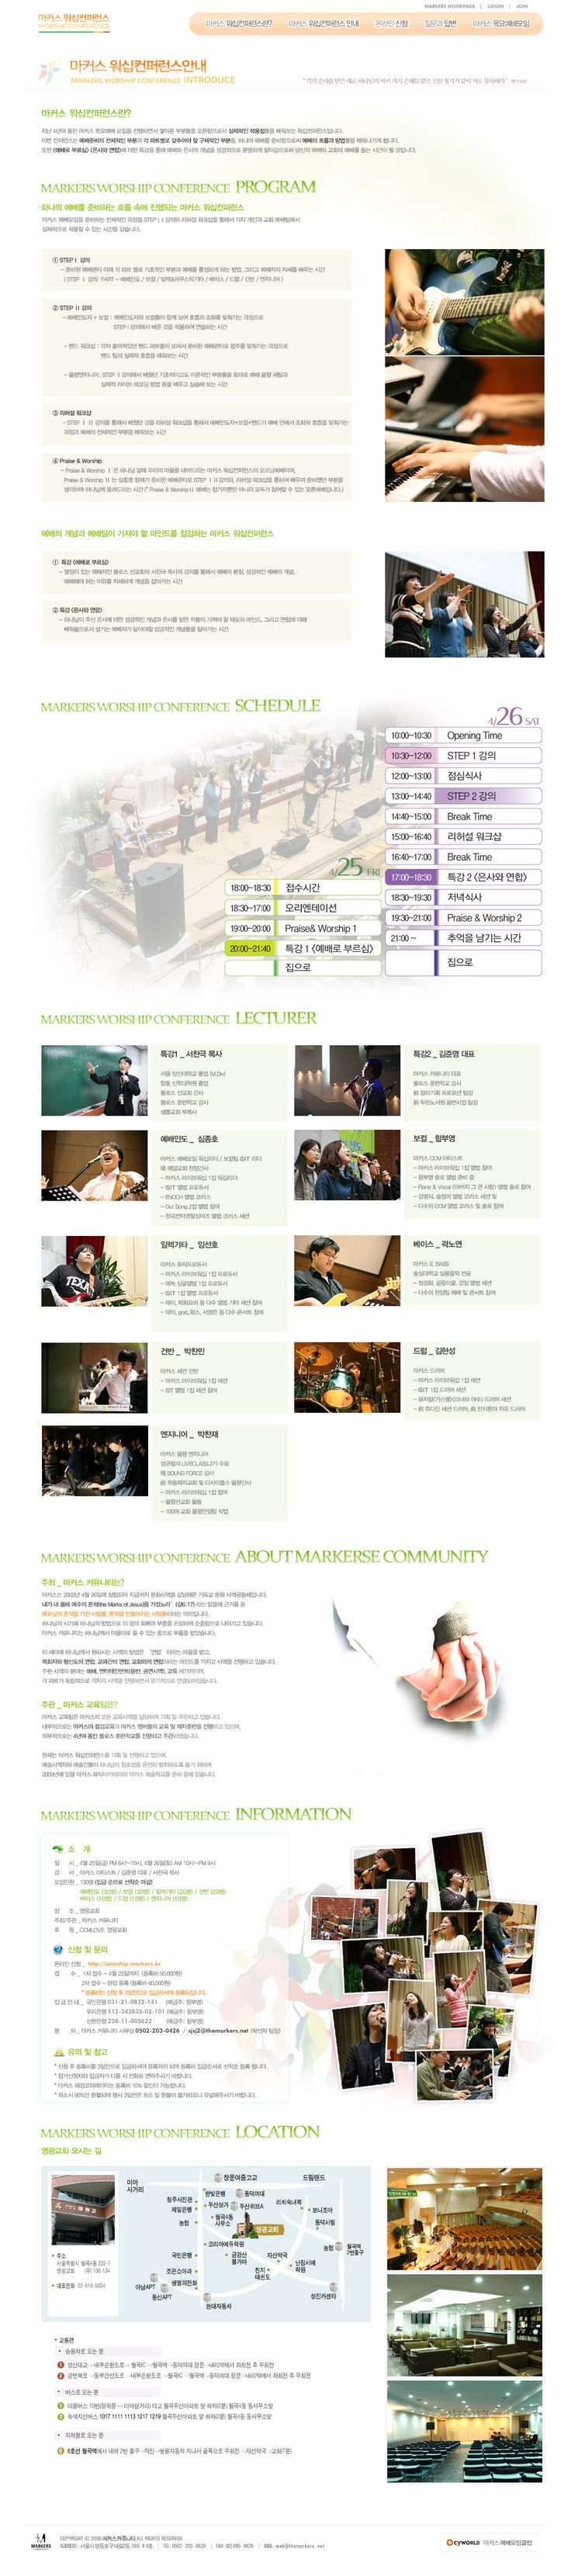 MARKERS Worship Conference Webpage